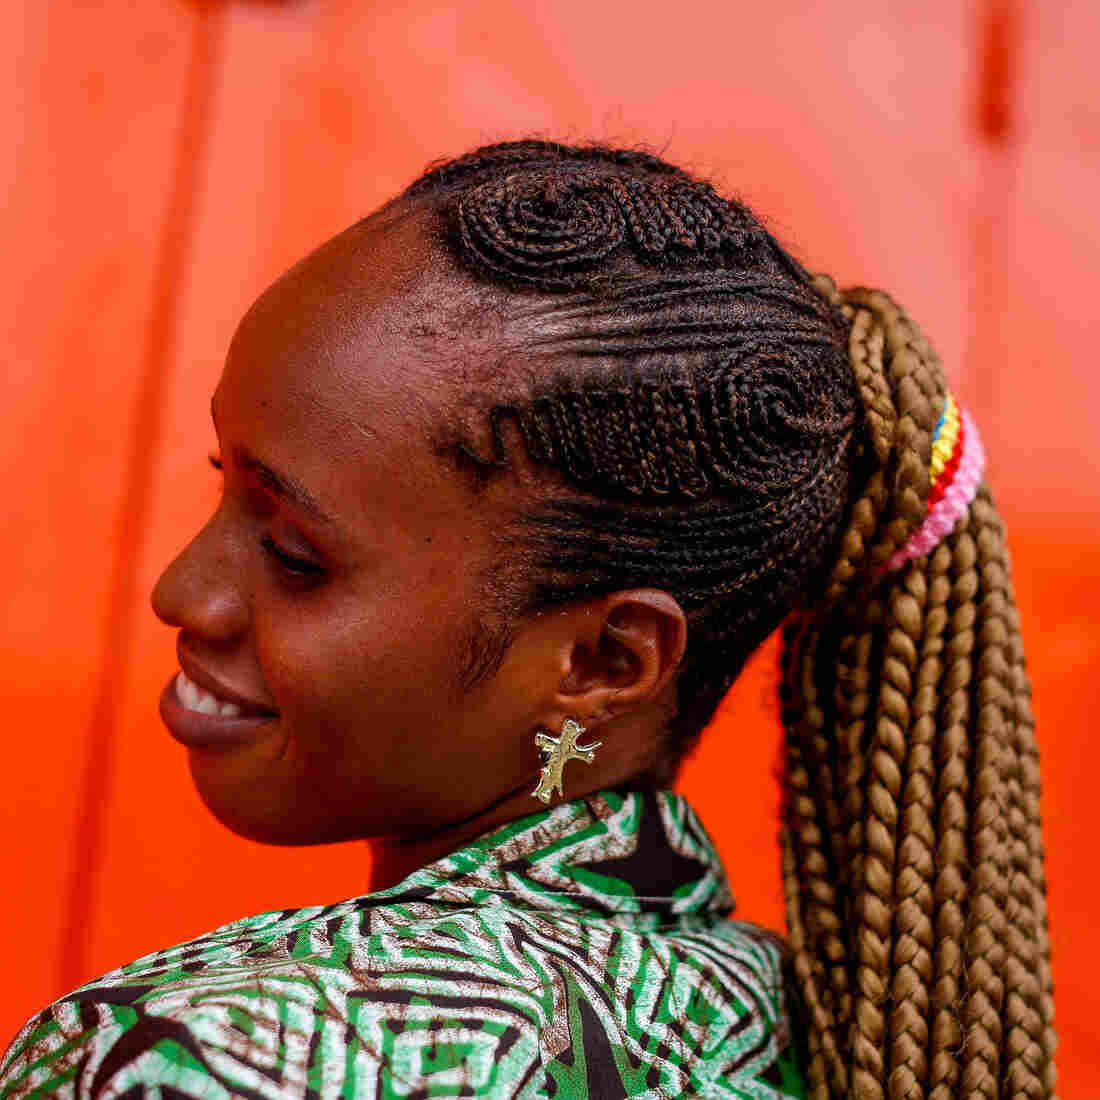 Zoe Kiadi, 25, says neither unemployment nor the presence of Ebola has dimmed her desire to look nice. What really sets her apart is her hairstyle.